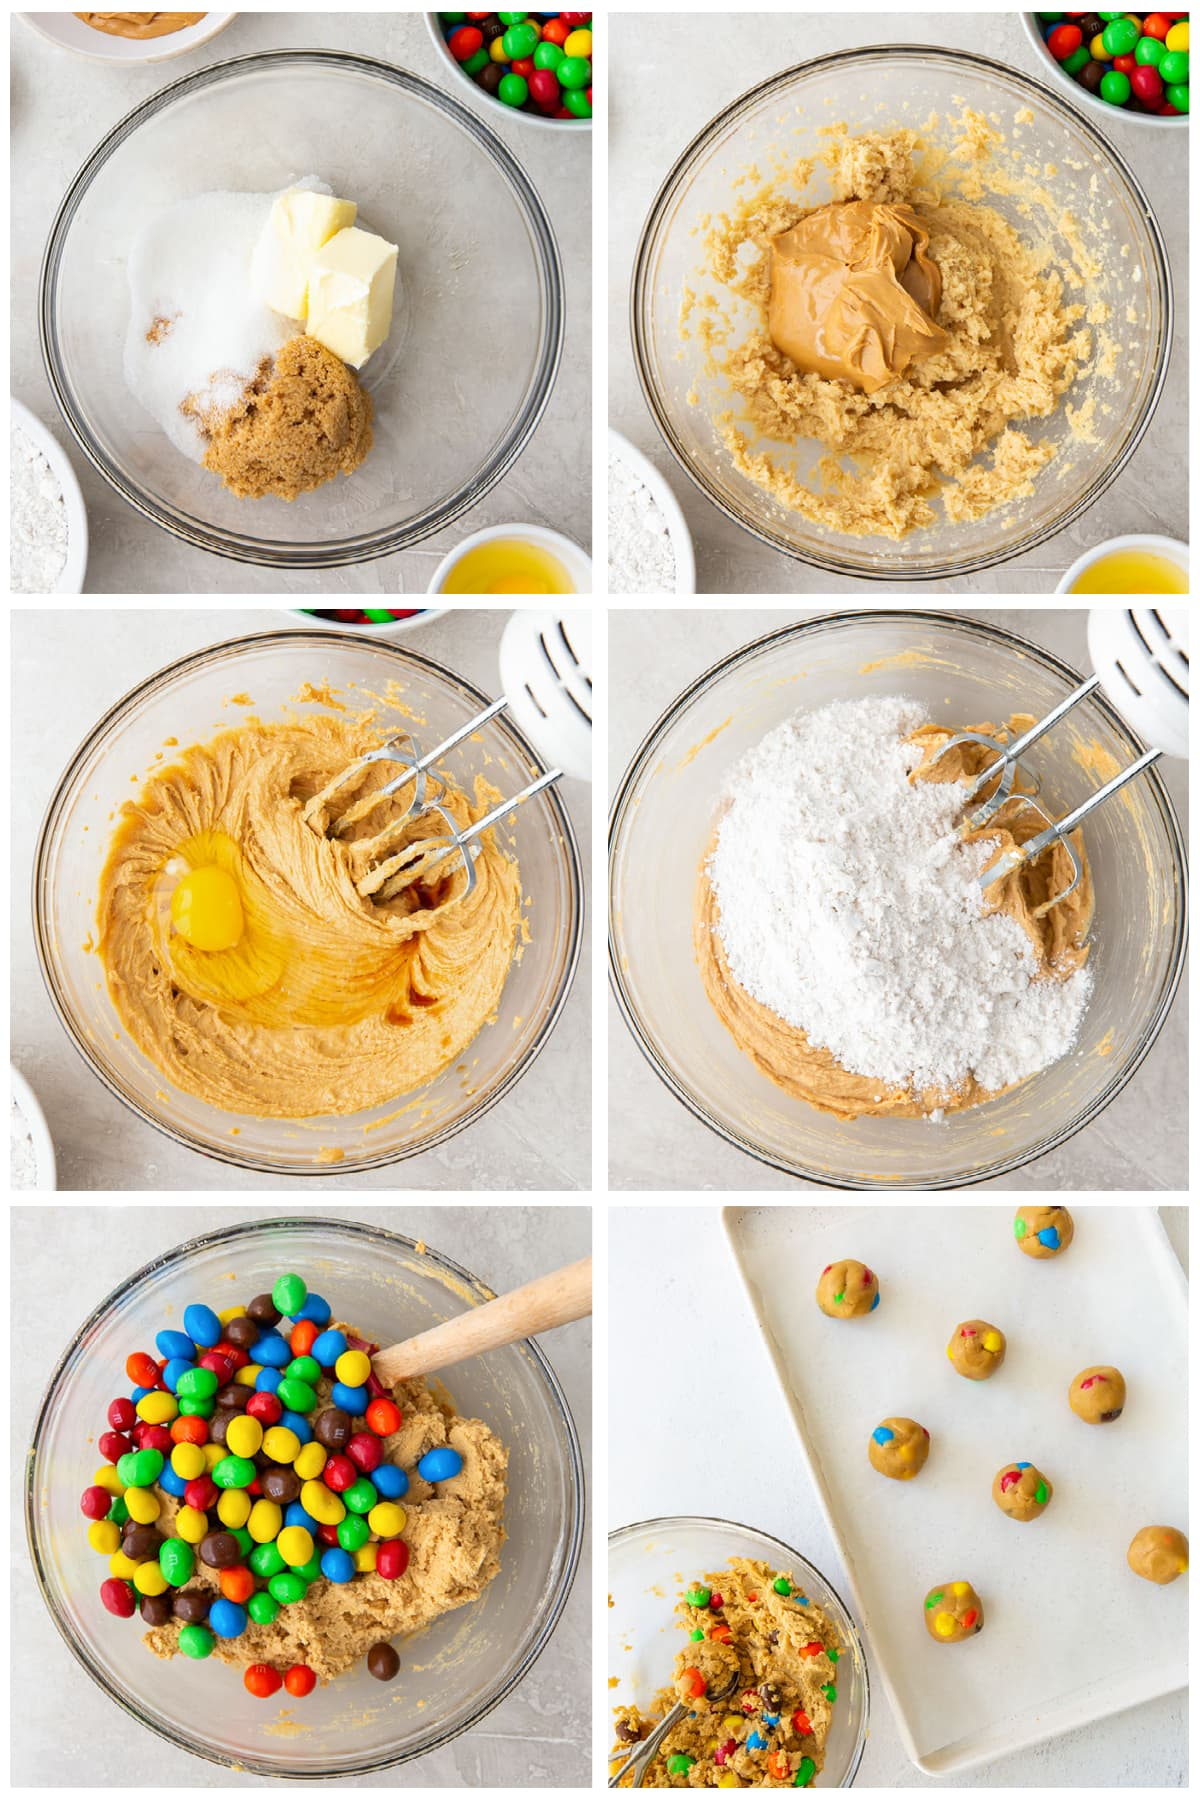 photo collage demonstrating how to make peanut m&m cookies